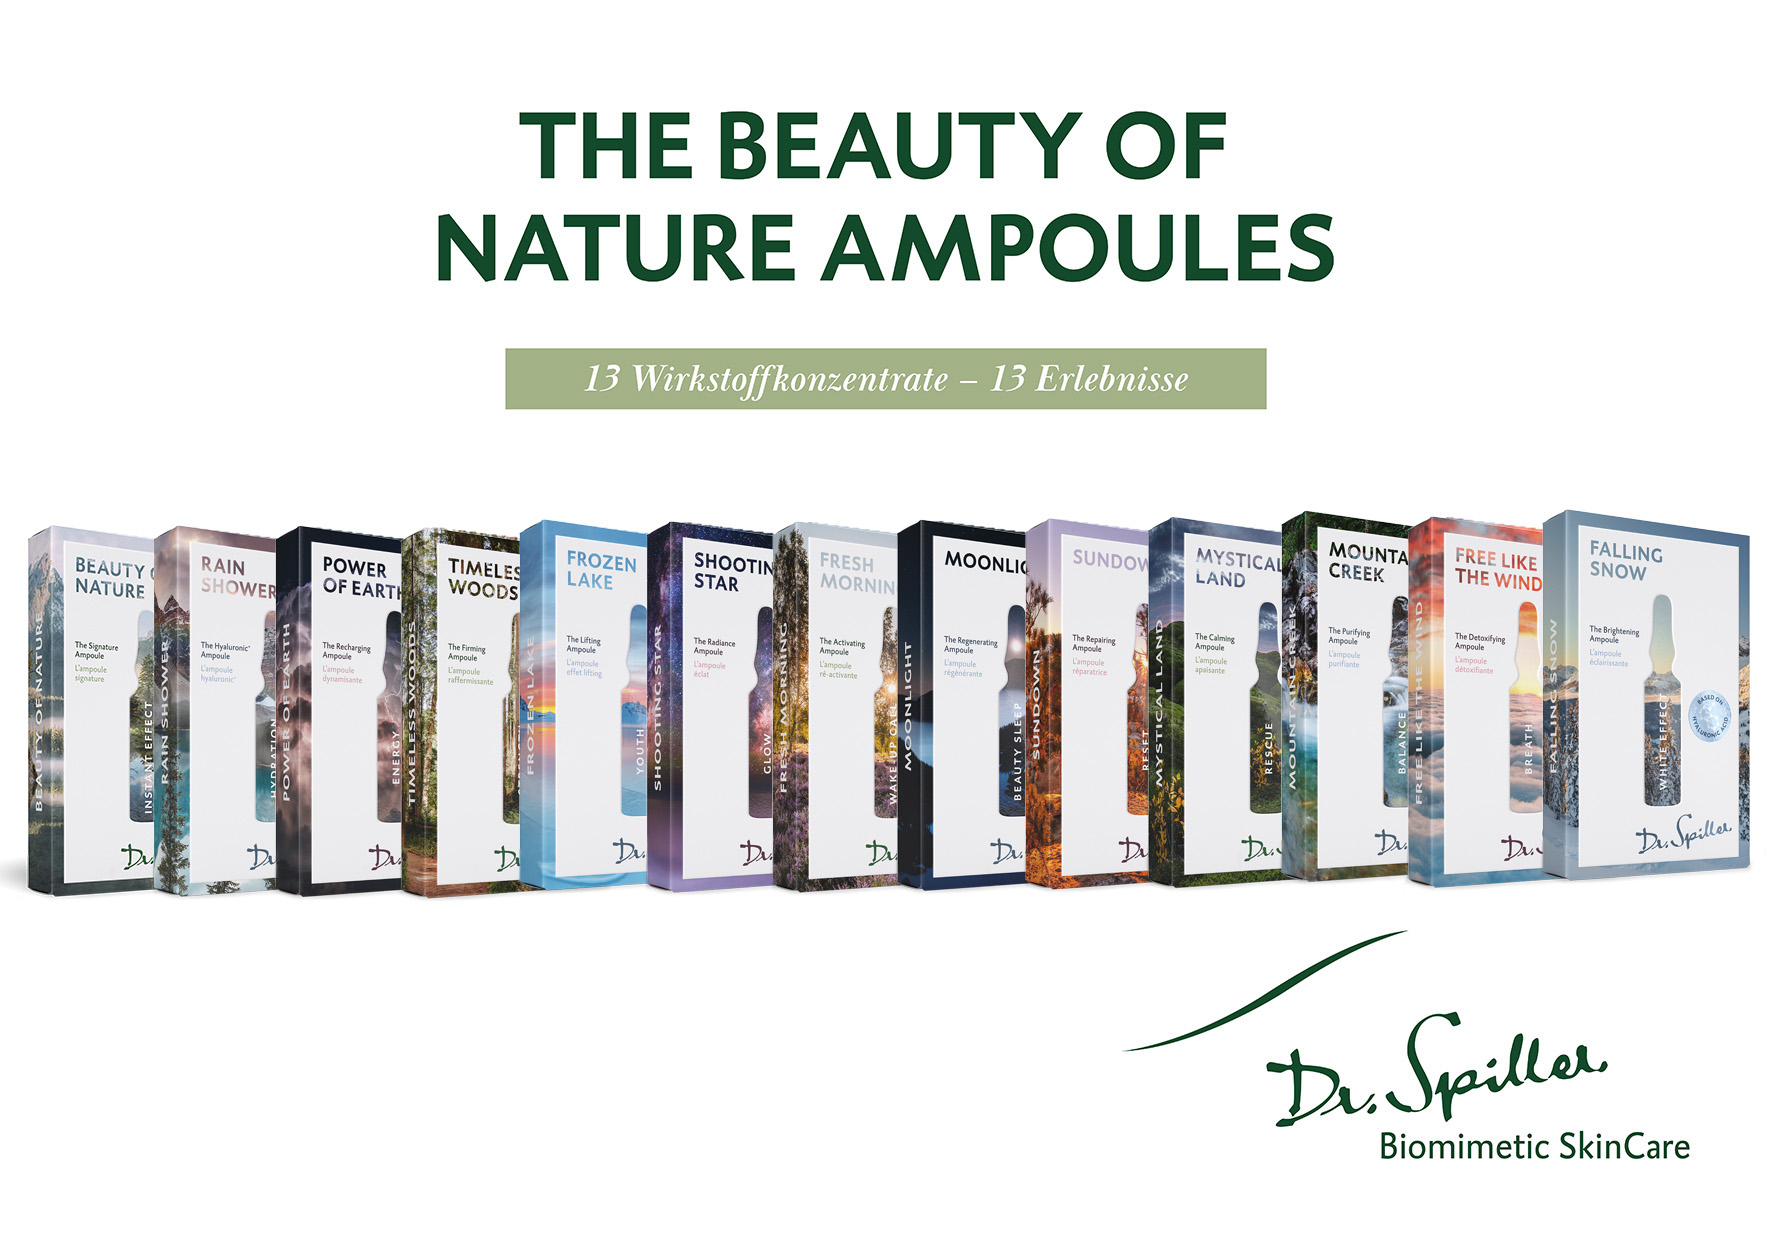 NEU - The Beauty of Nature Ampoules